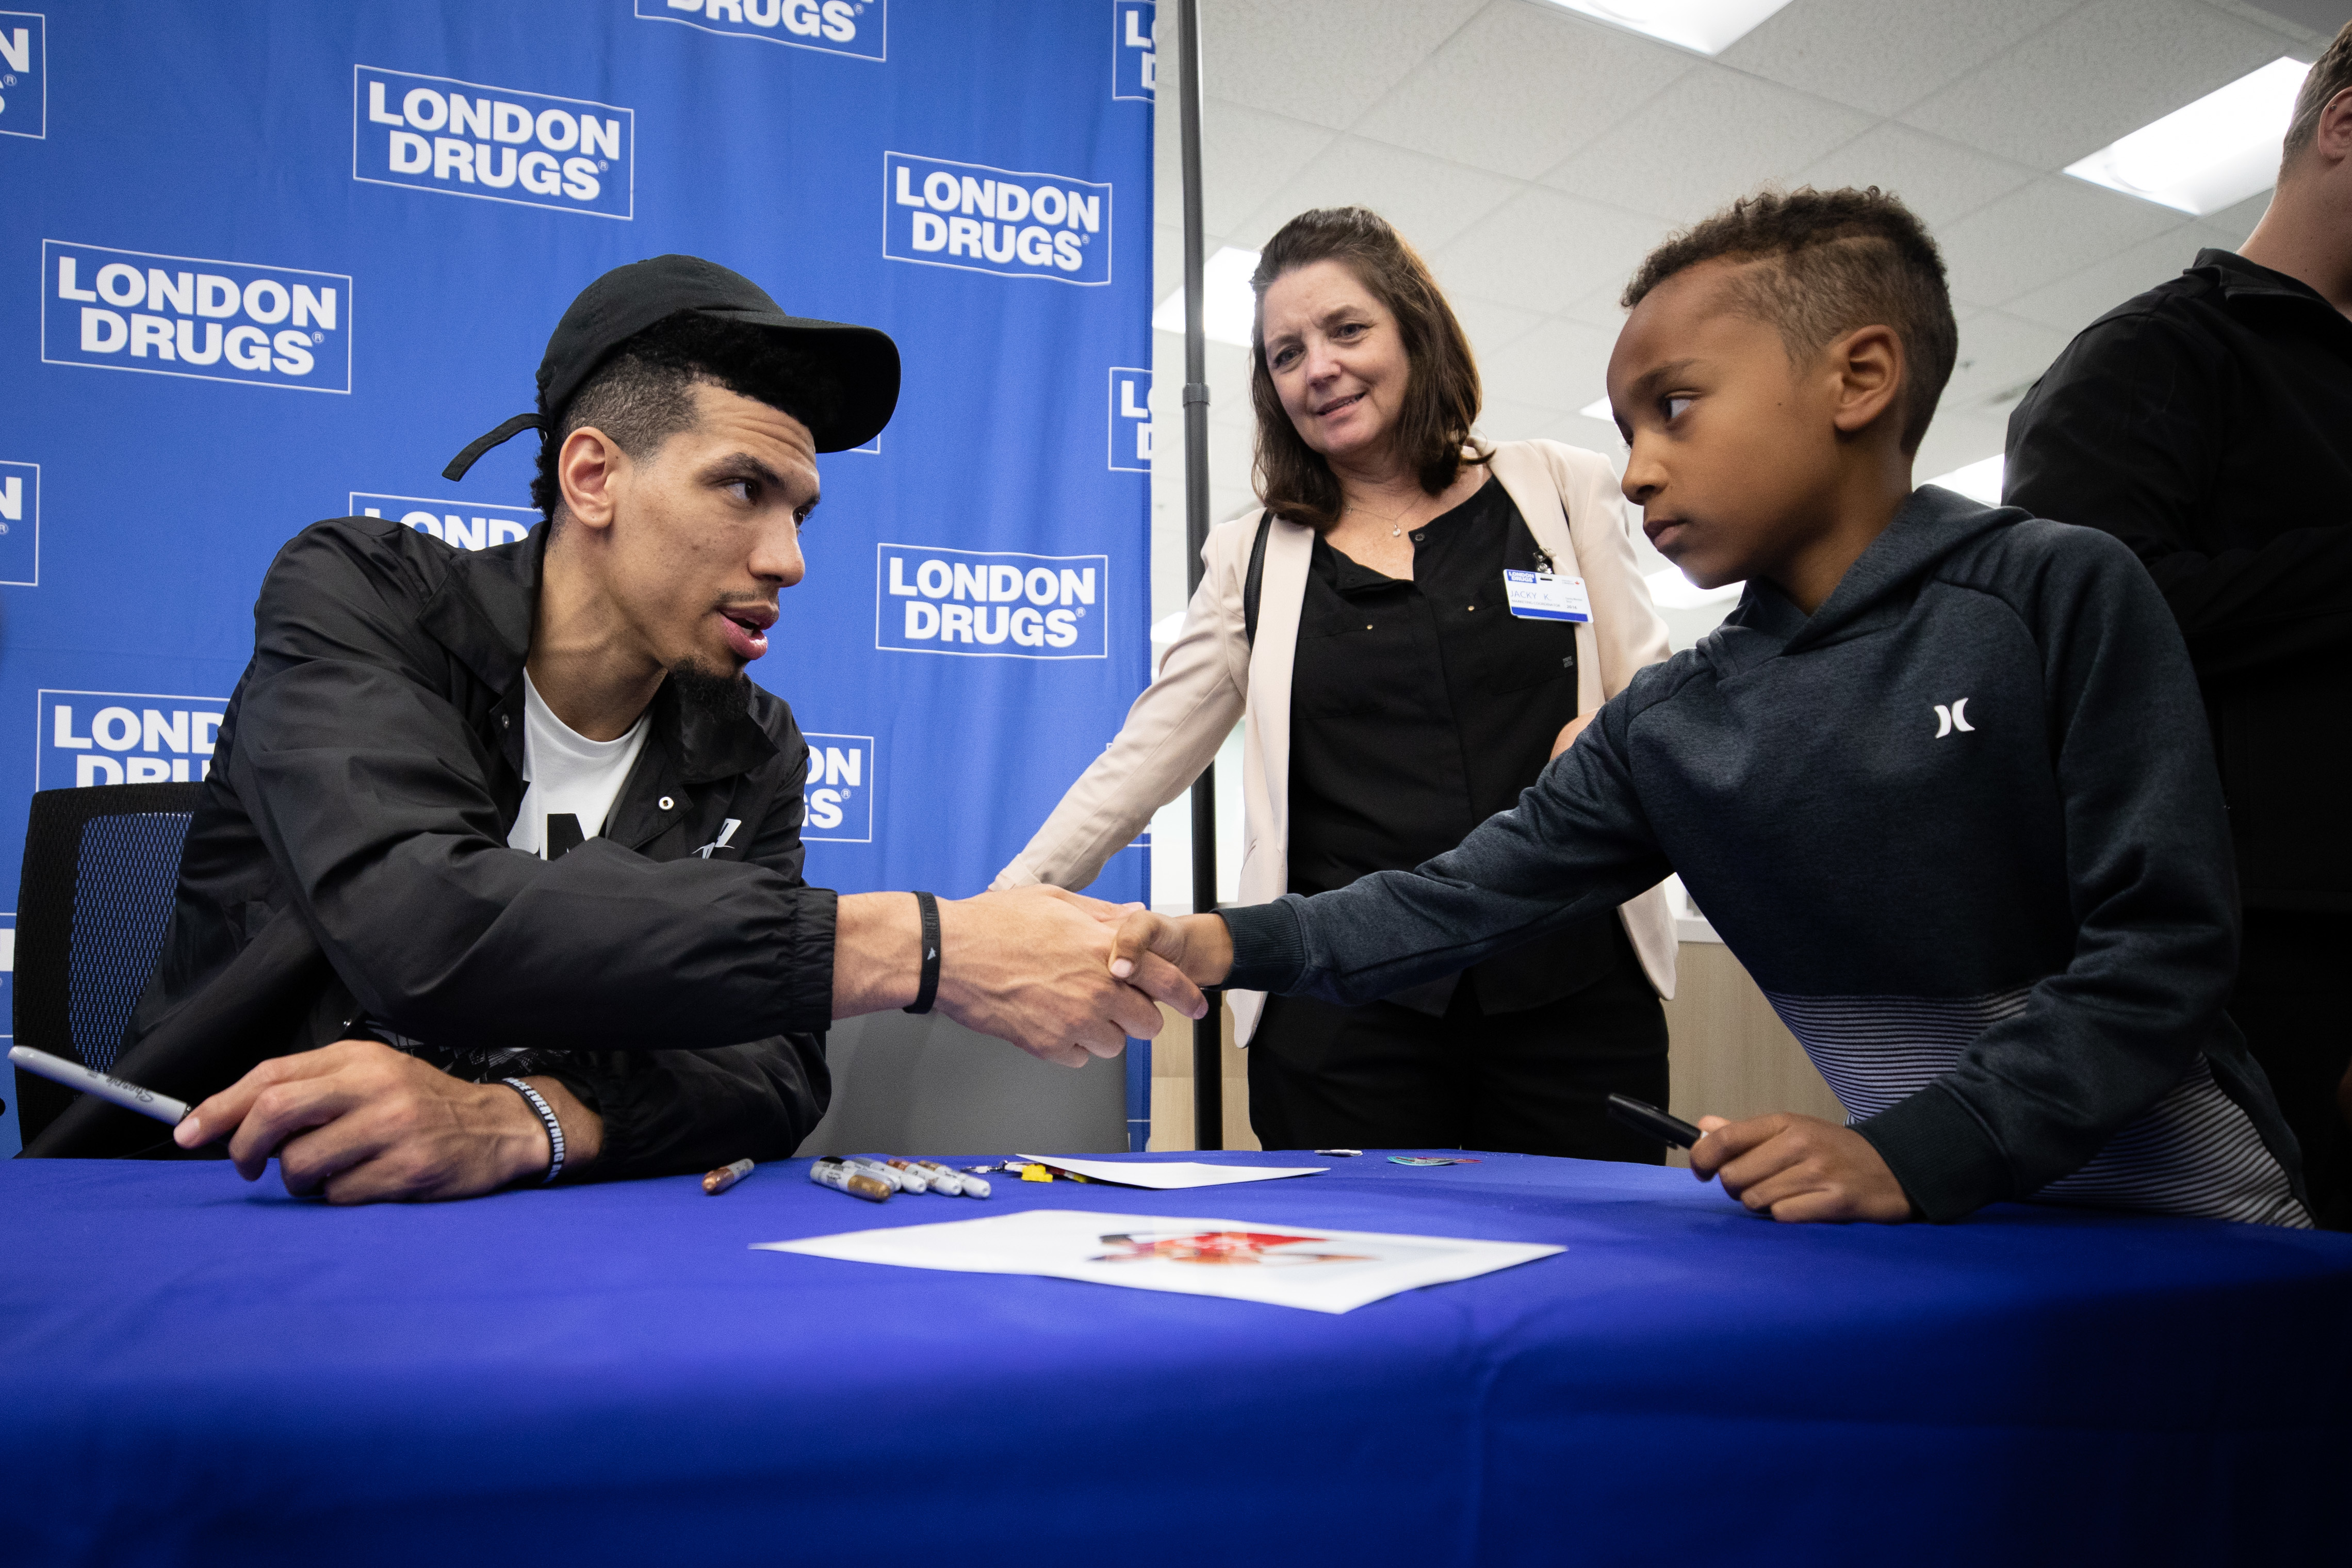 Danny Green, former Toronto Raptors basketball player, shakes hands with a young fan at London Drugs in Vancouver on July 5, 2019. (Maggie MacPherson/CBC)